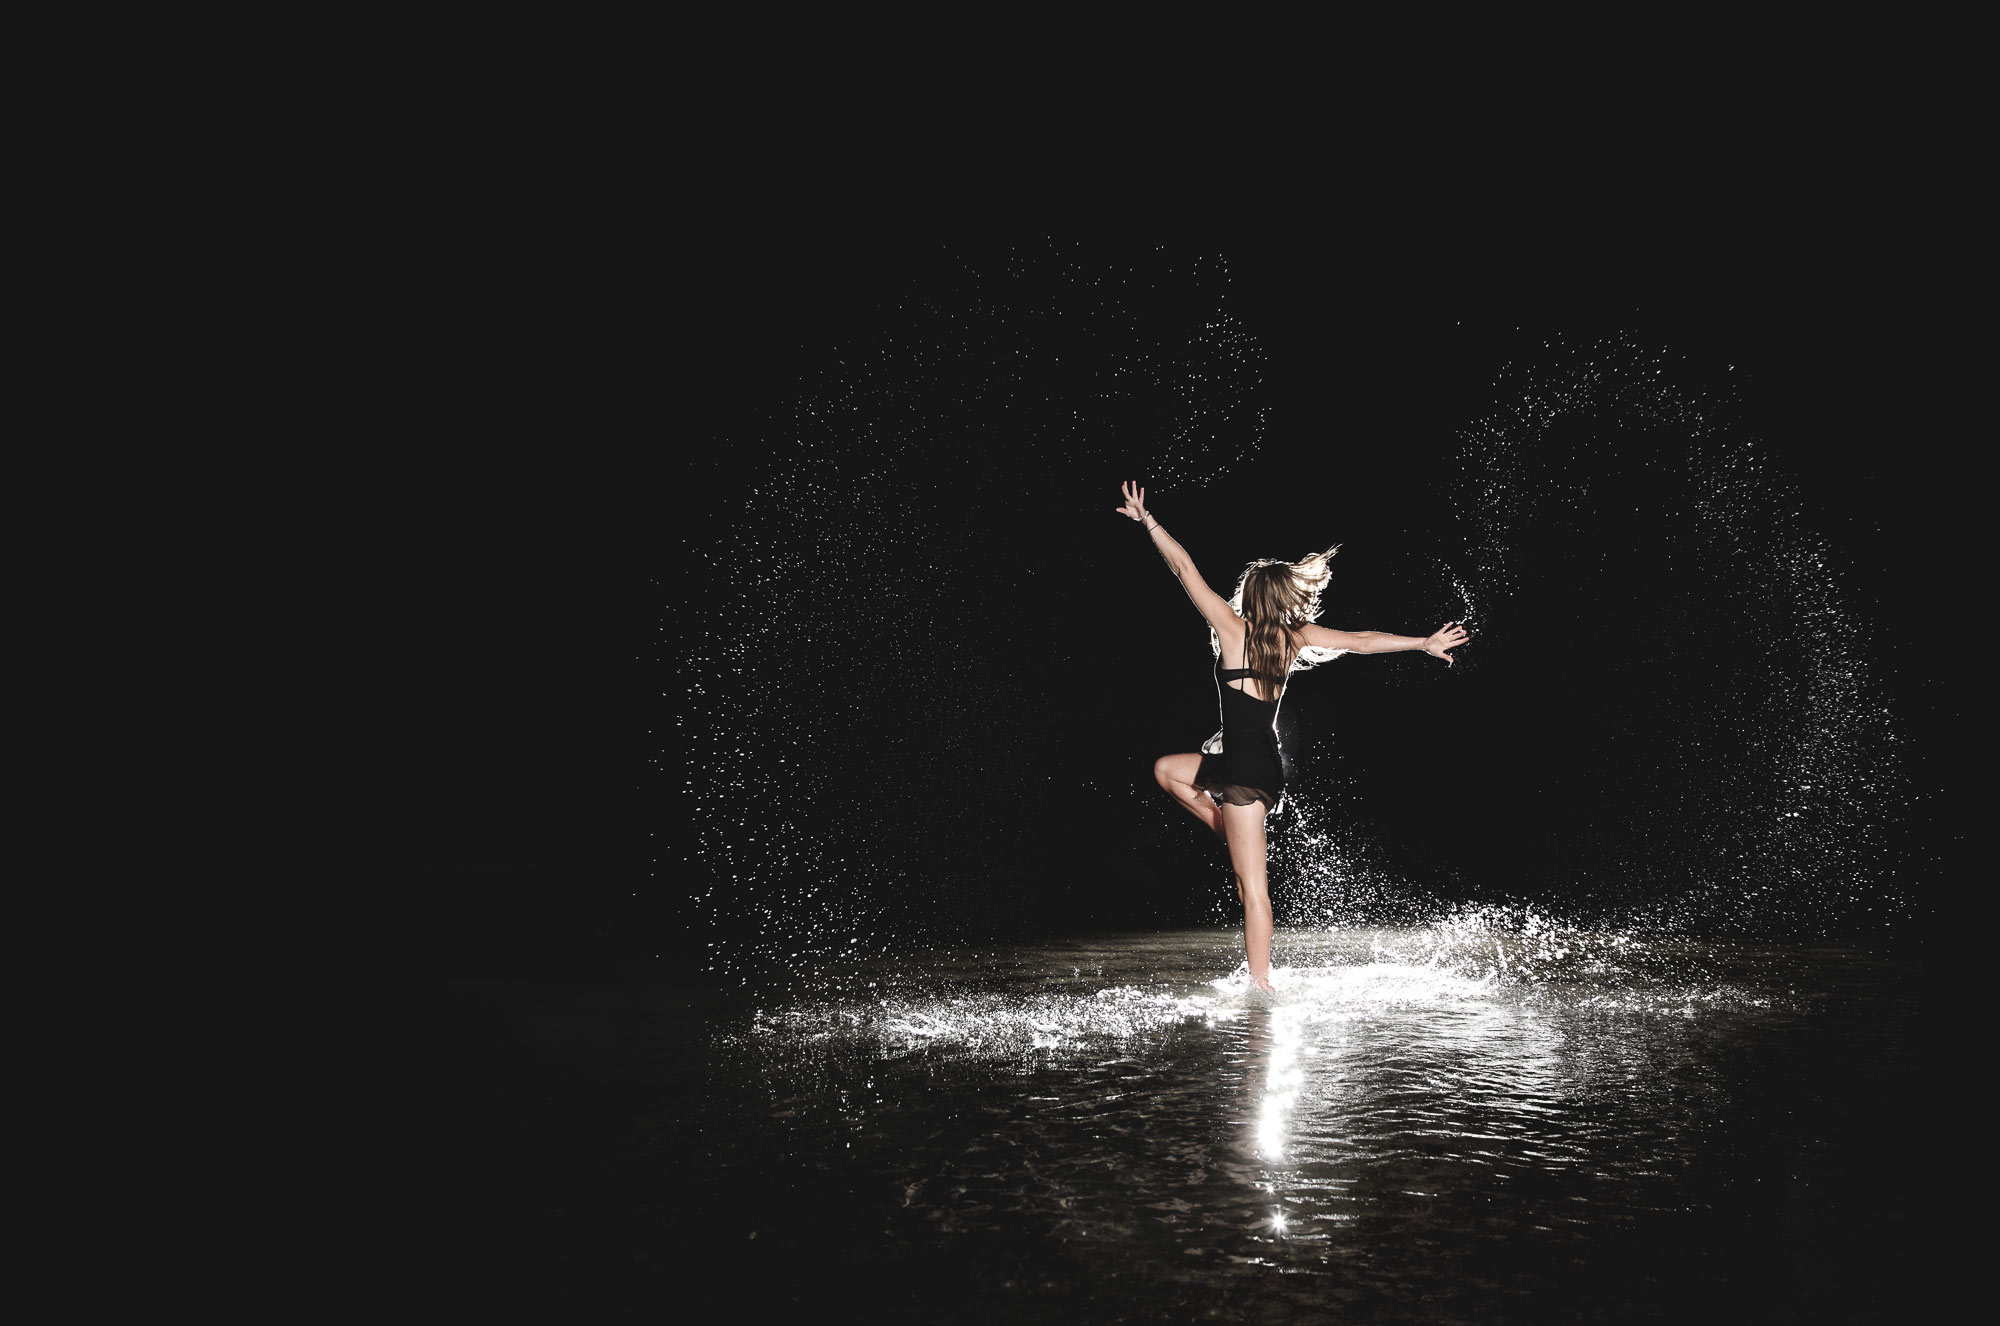 Ballet Dancer dancing in a lake in the rain